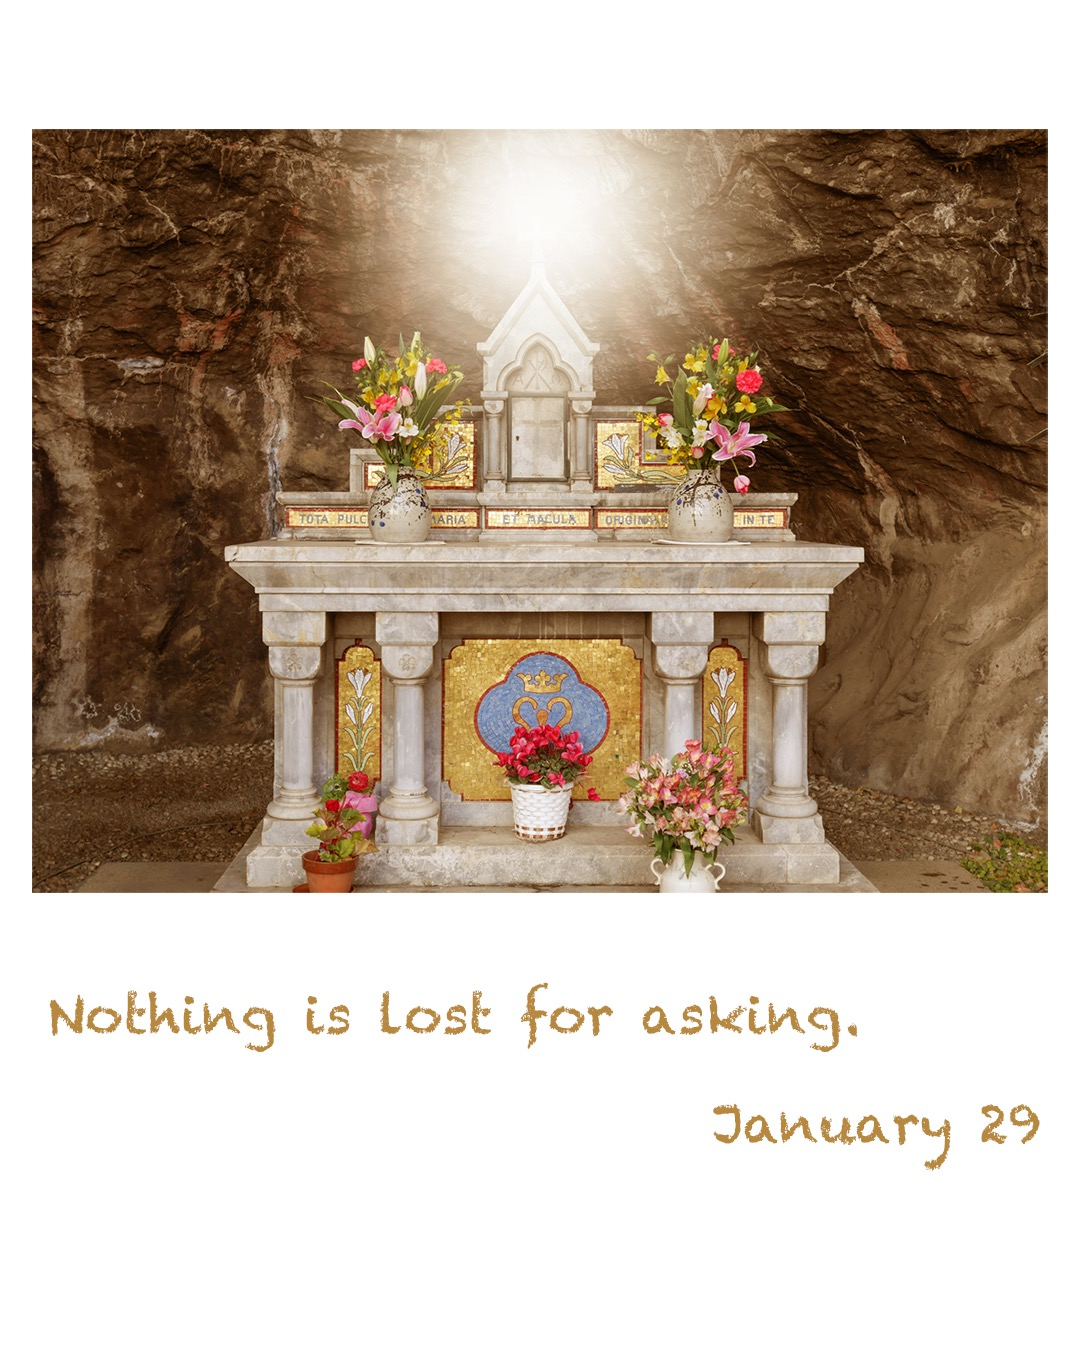 Nothing is lost for asking.